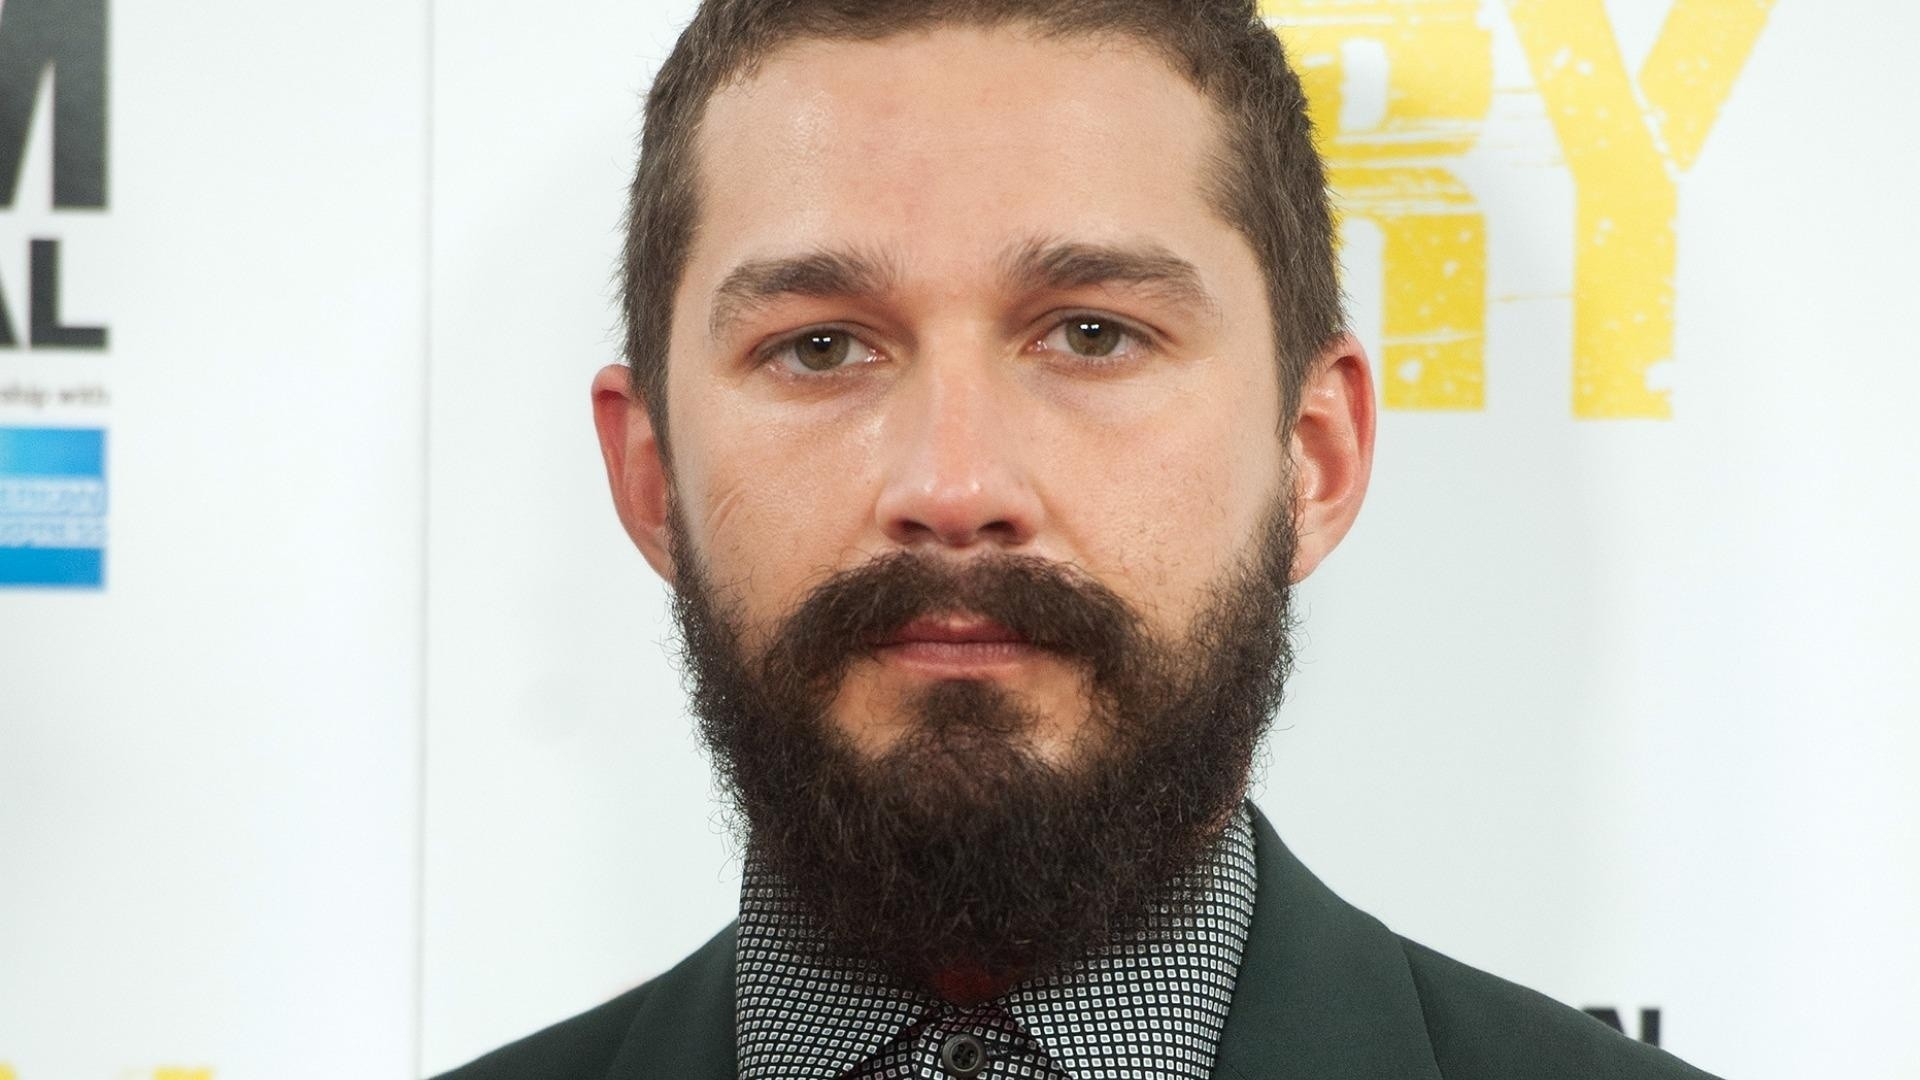 shia labeouf Wallpaper HD Wallpaper